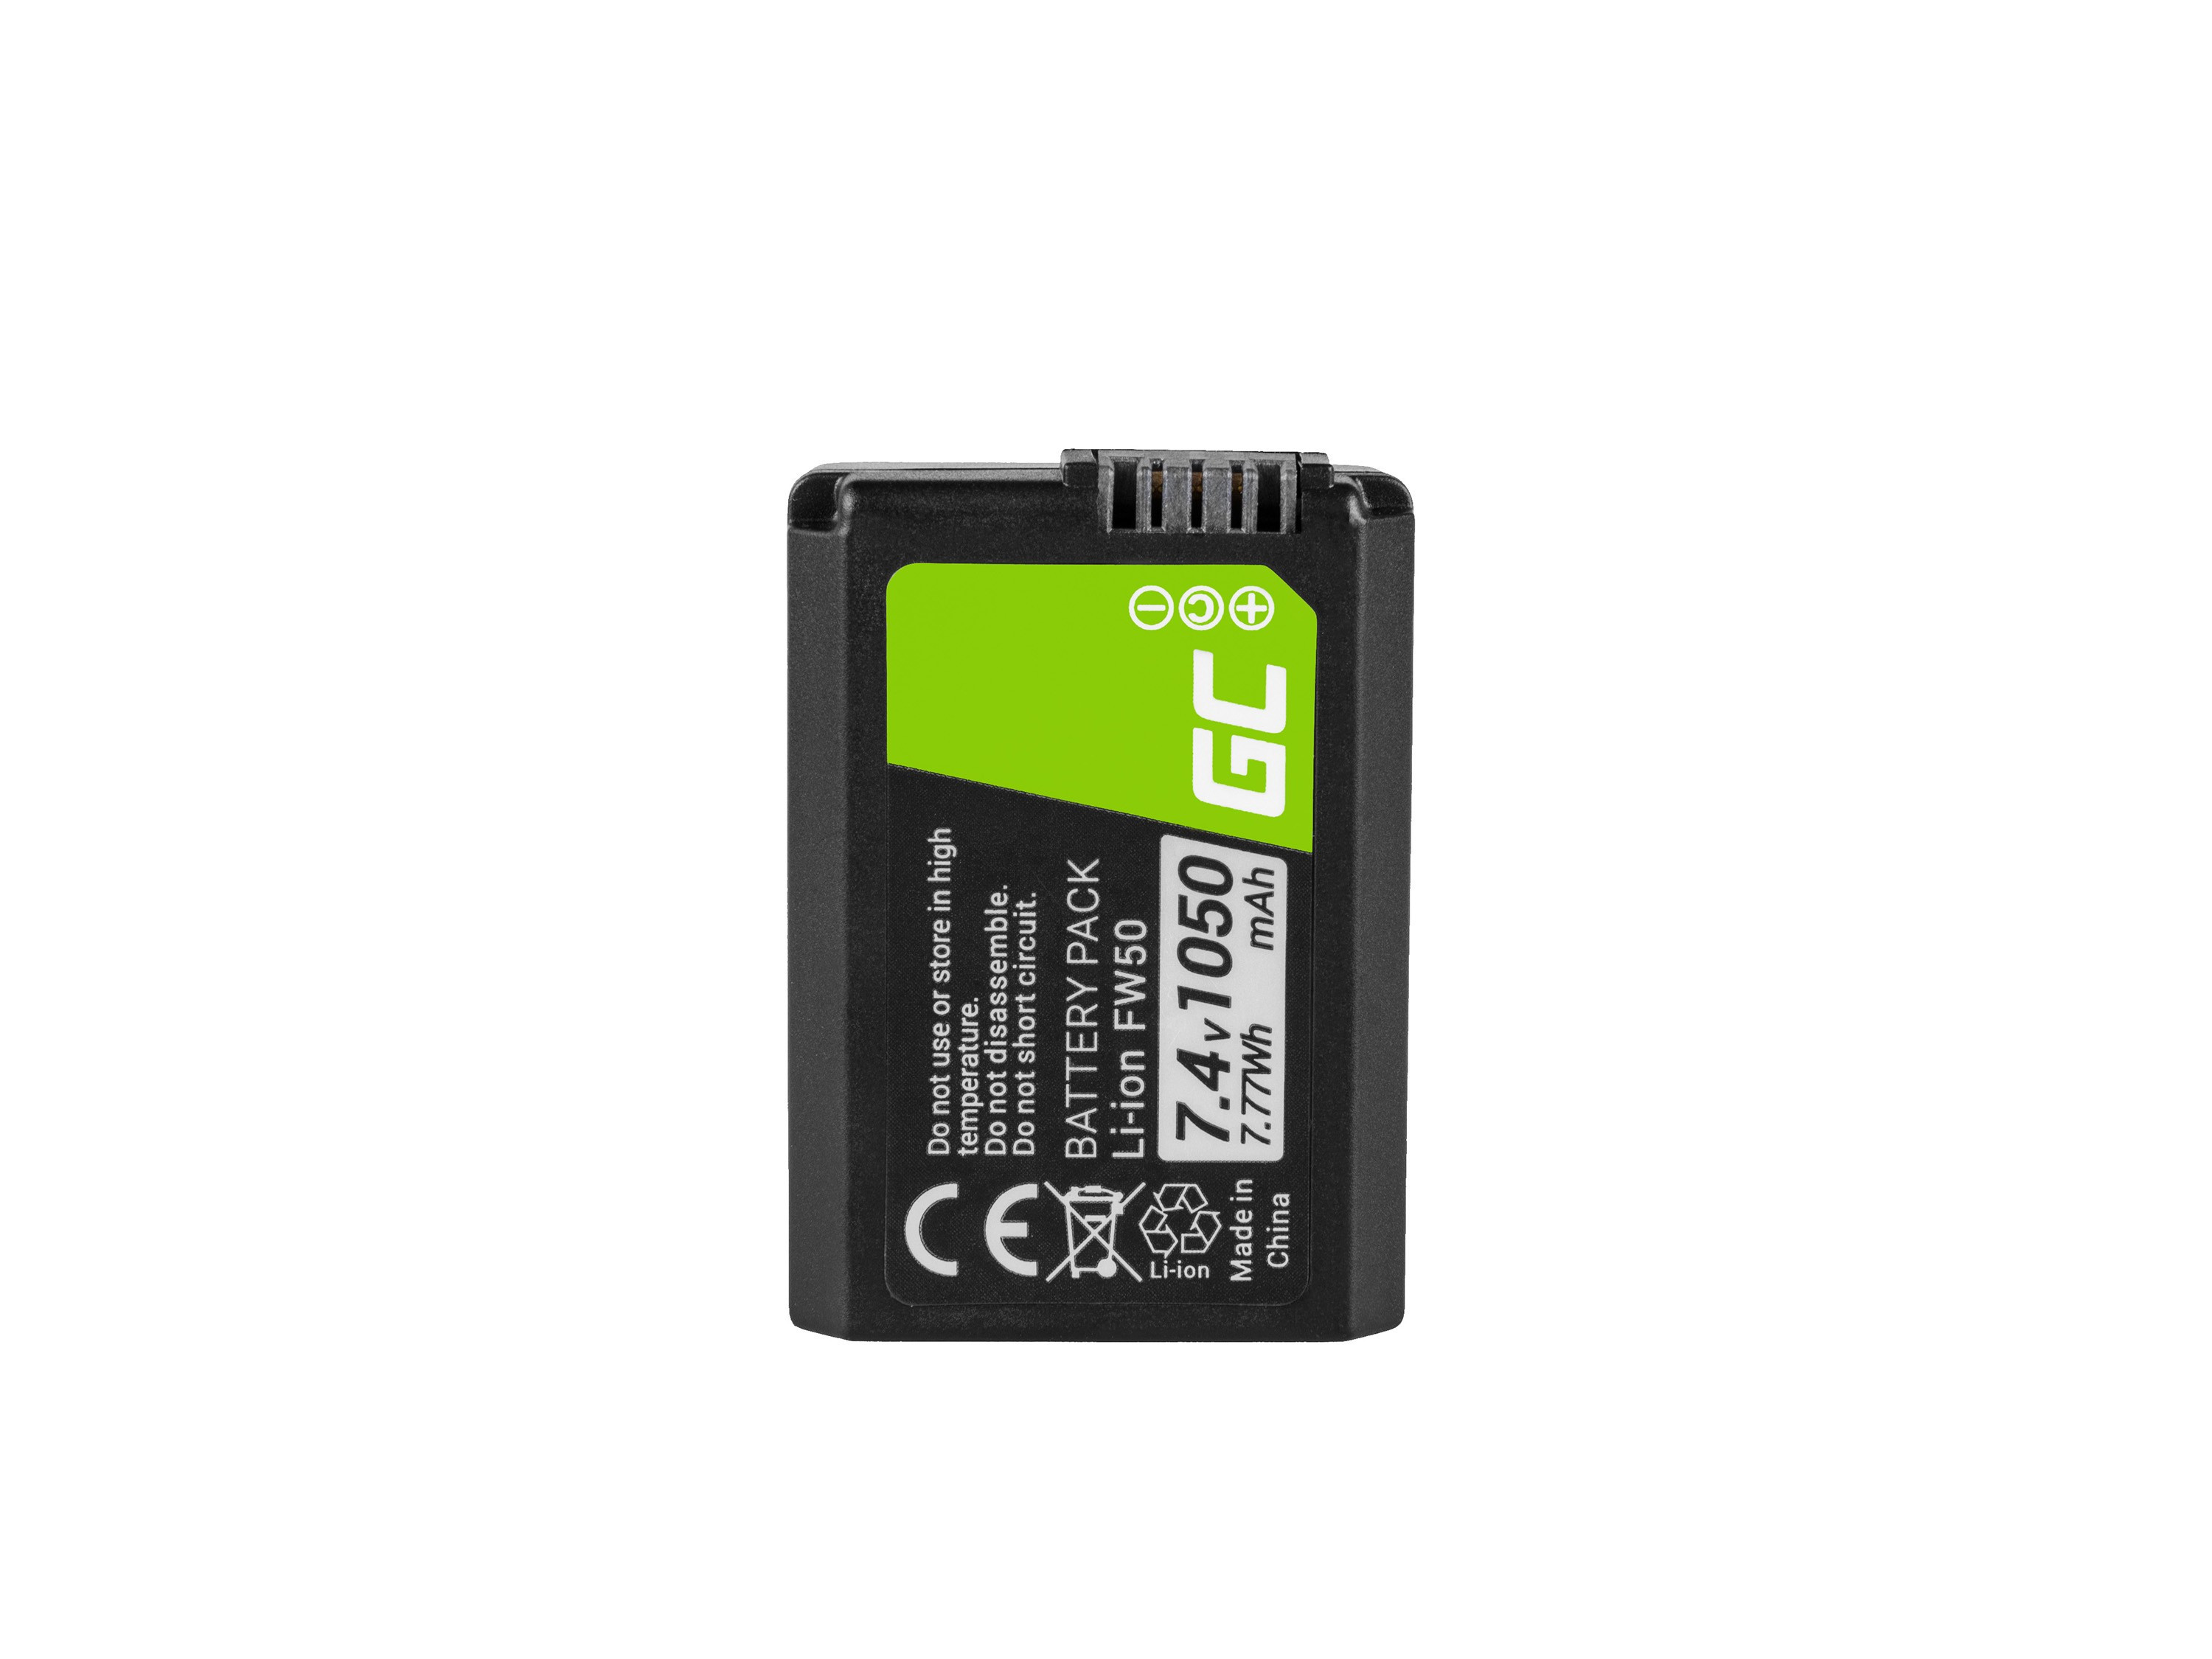 Green Cell FW50 Camera Battery for Sony Alpha A7, A7 II, A7R, A7R II, A7S, A7S II, A5000, A5100, A6000, A6300, A6500 7.4V 1050mA